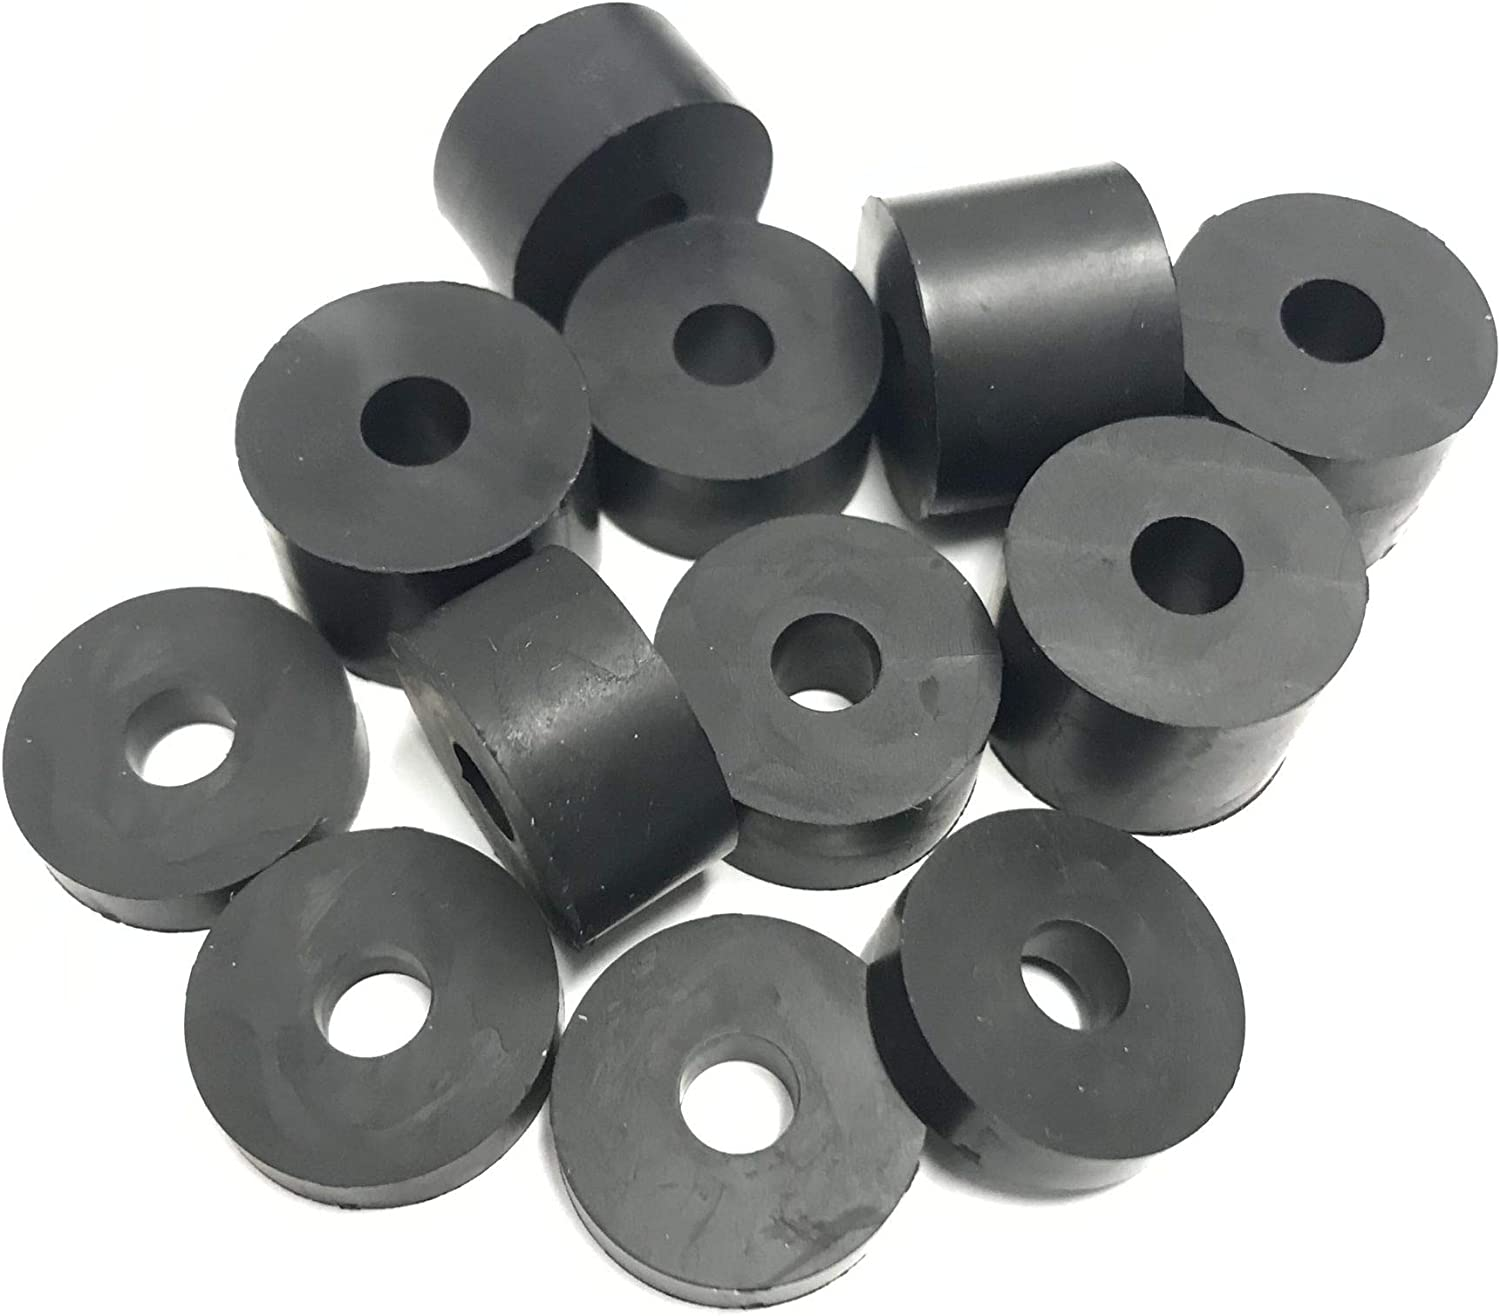 Rubber Spacers Standoff Washers 12 Pack 2 x 5mm M6 6mm 4 x 15mm 4 x 10mm